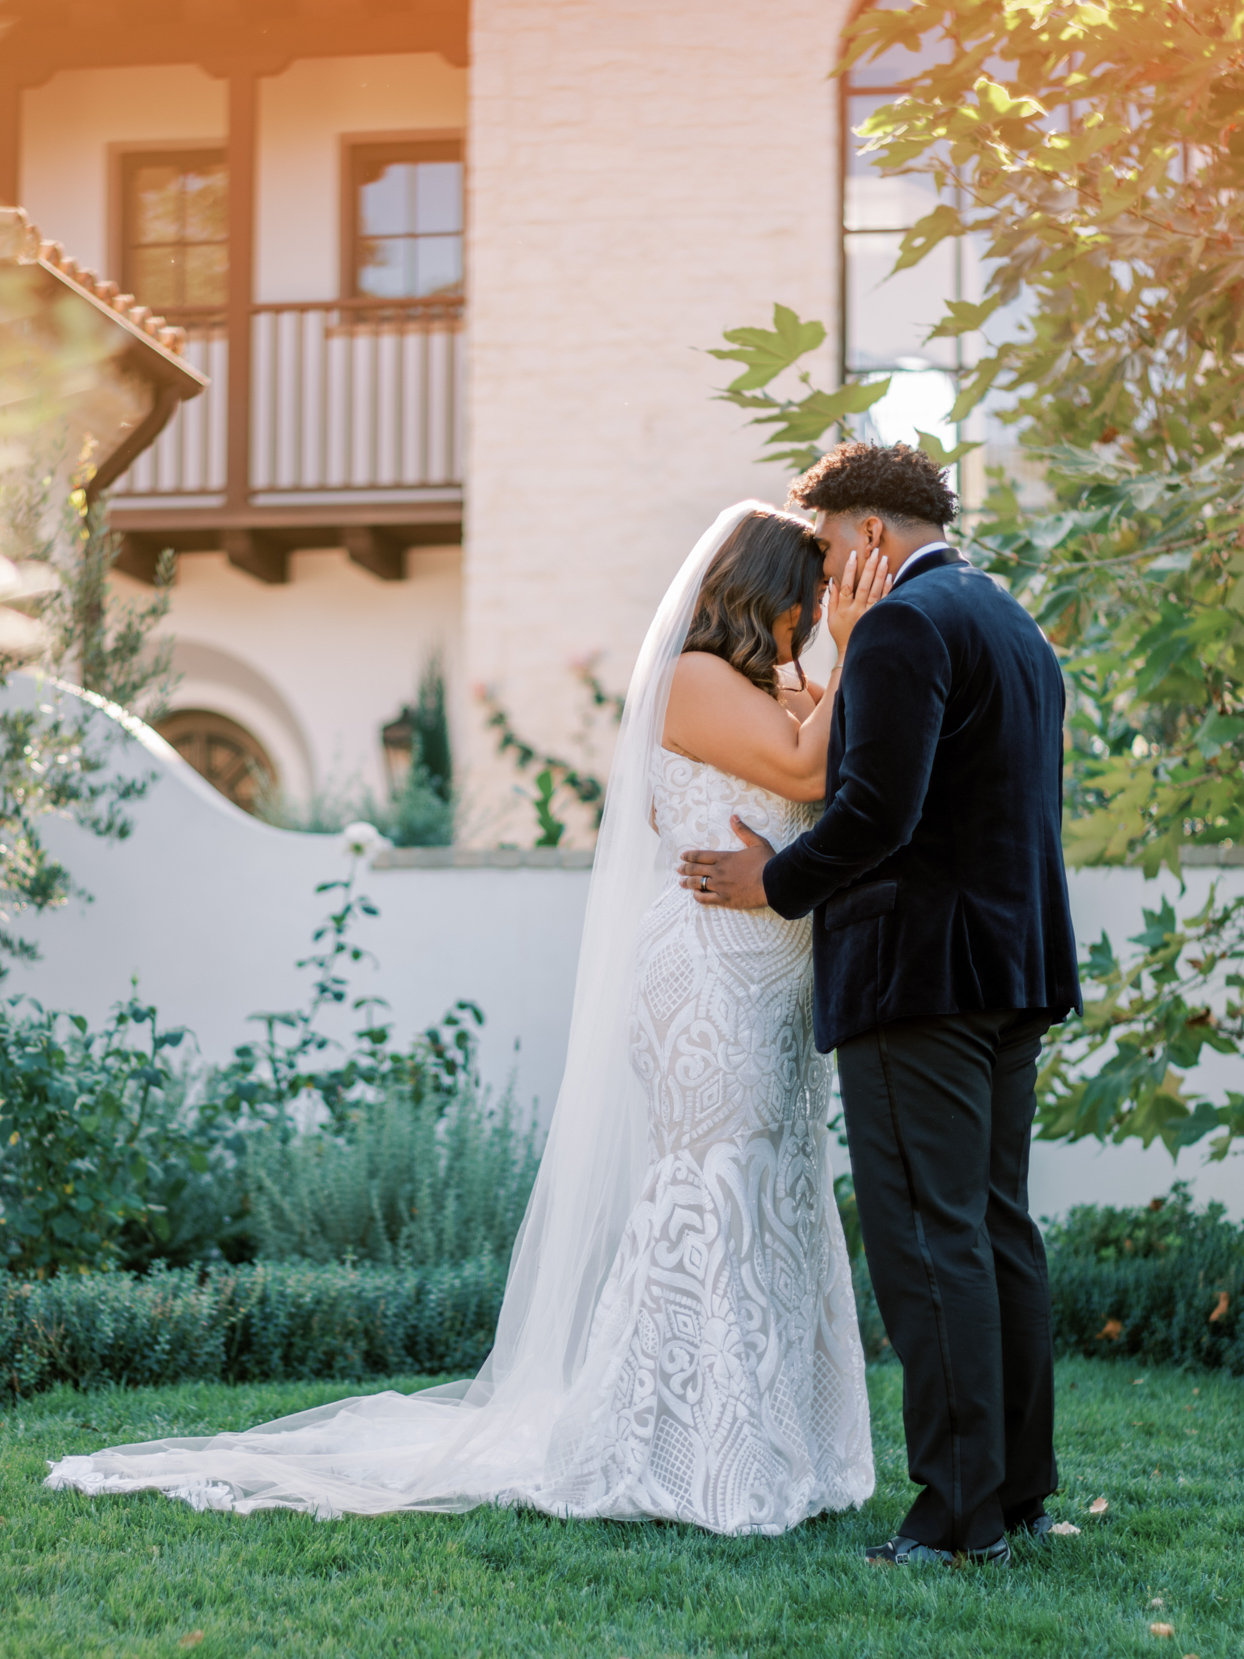 couple embracing during first look on grassy lawn